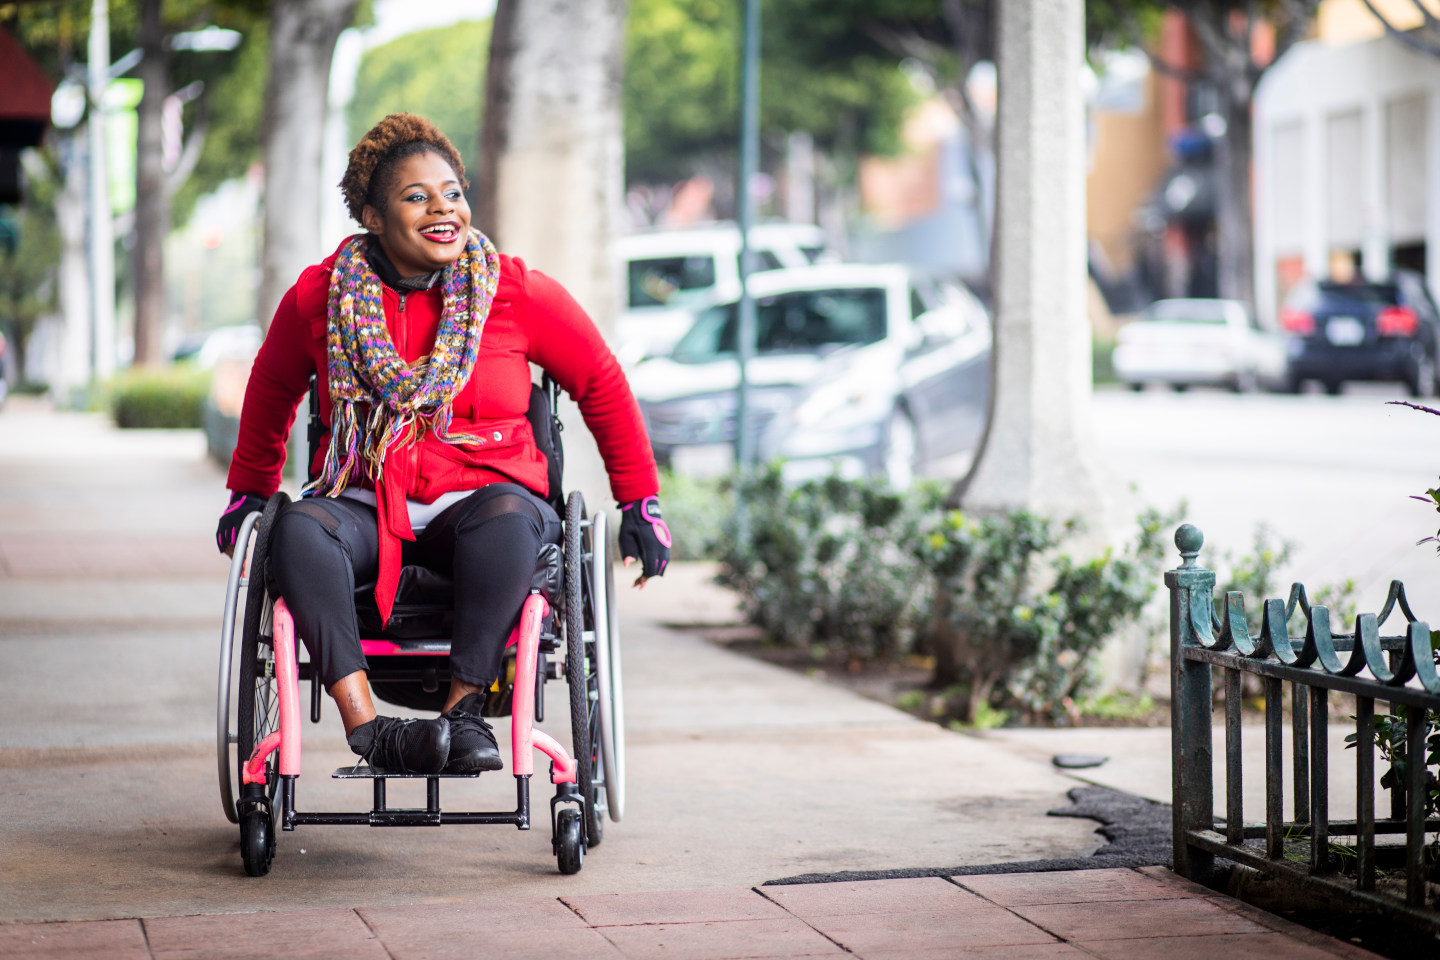 A young black disabled woman with a wheelchair and a bright colored sweater and her Asian friend walk around the city.